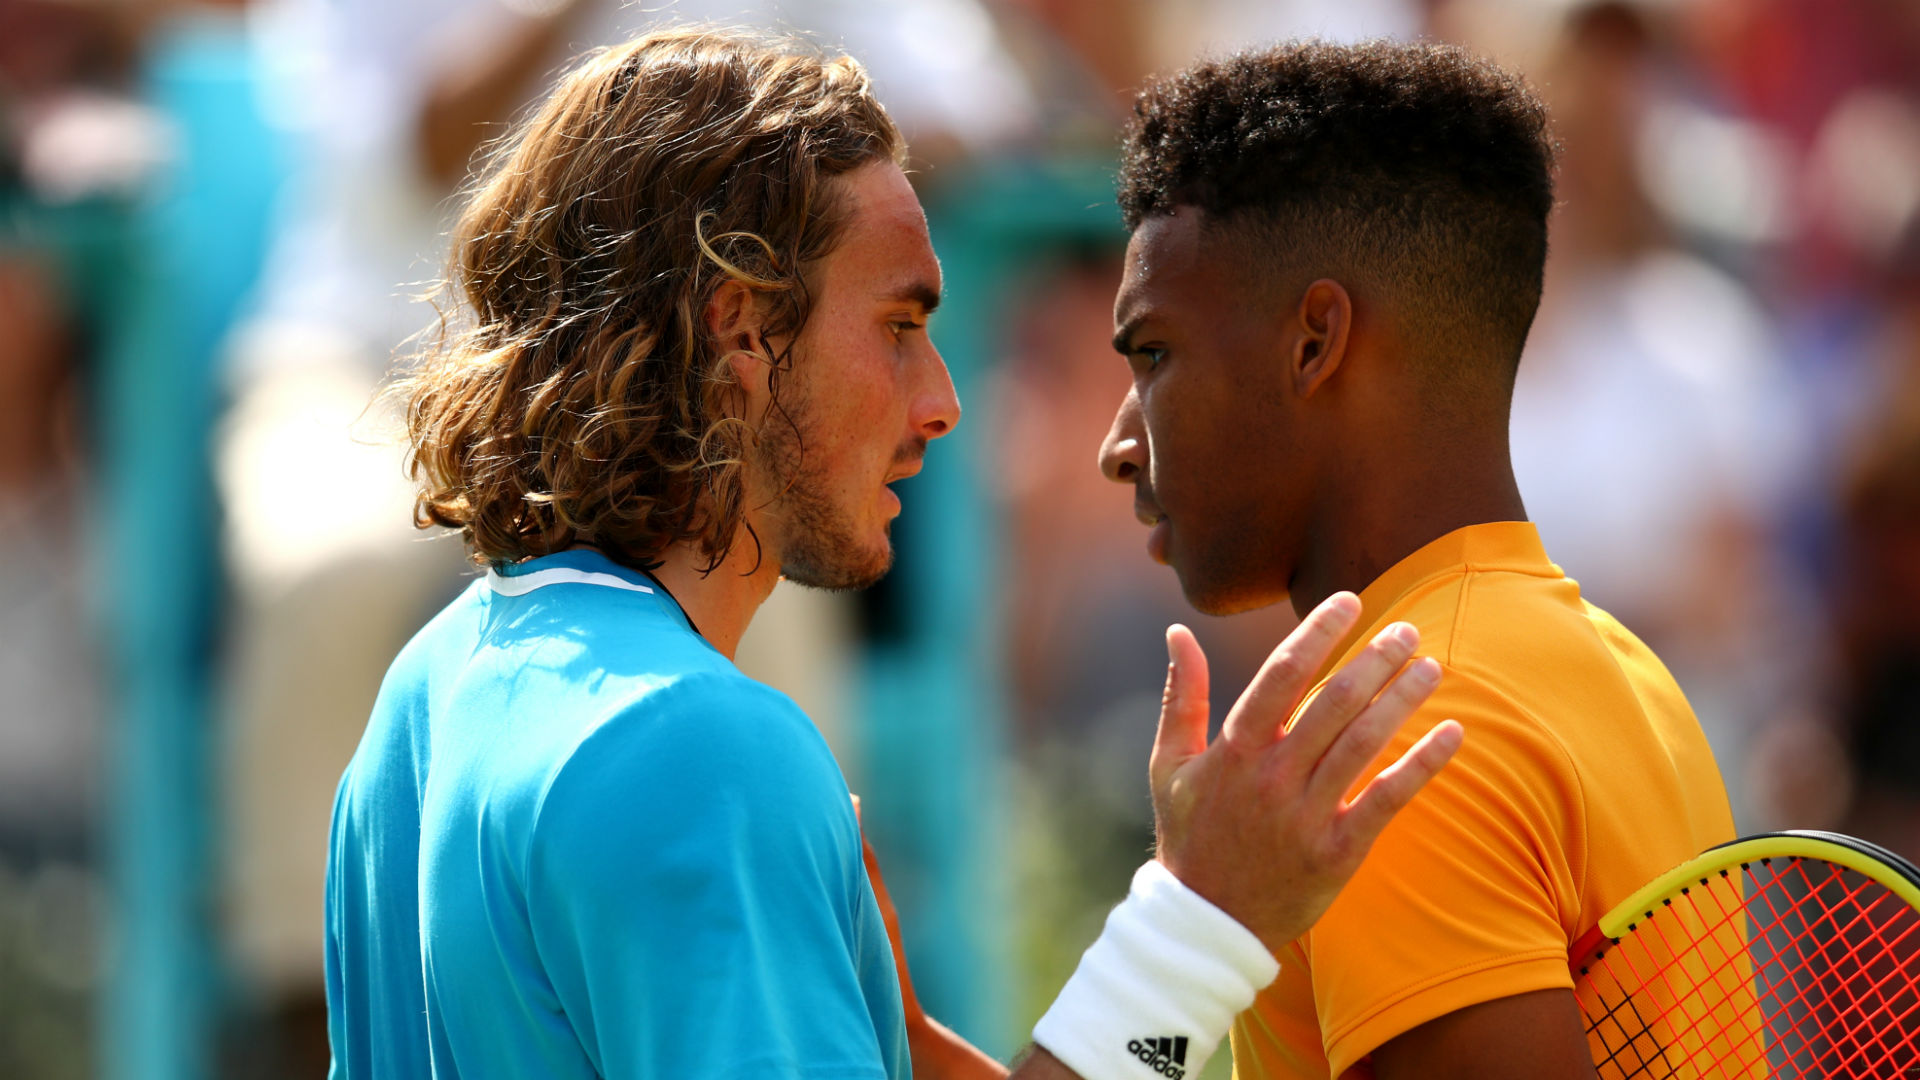 Tsitsipas hails Auger-Aliassime as 'most difficult opponent' after Queen's loss